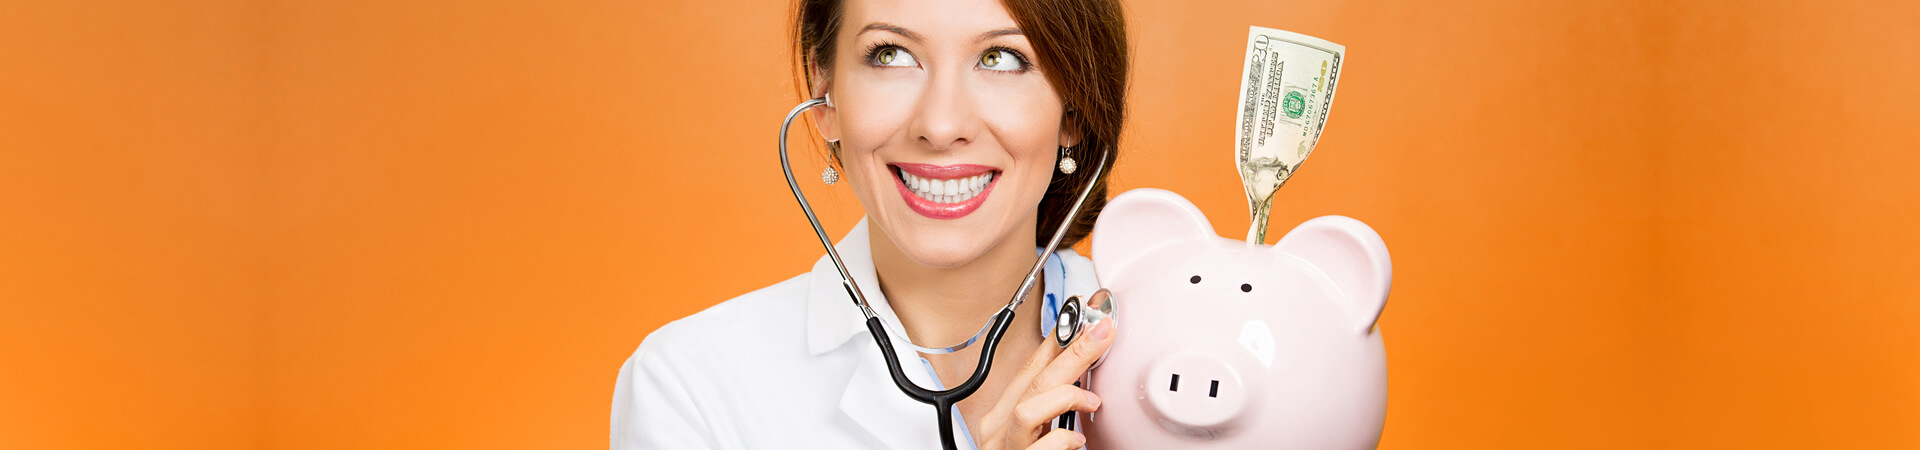 Health Savings Account or HSA